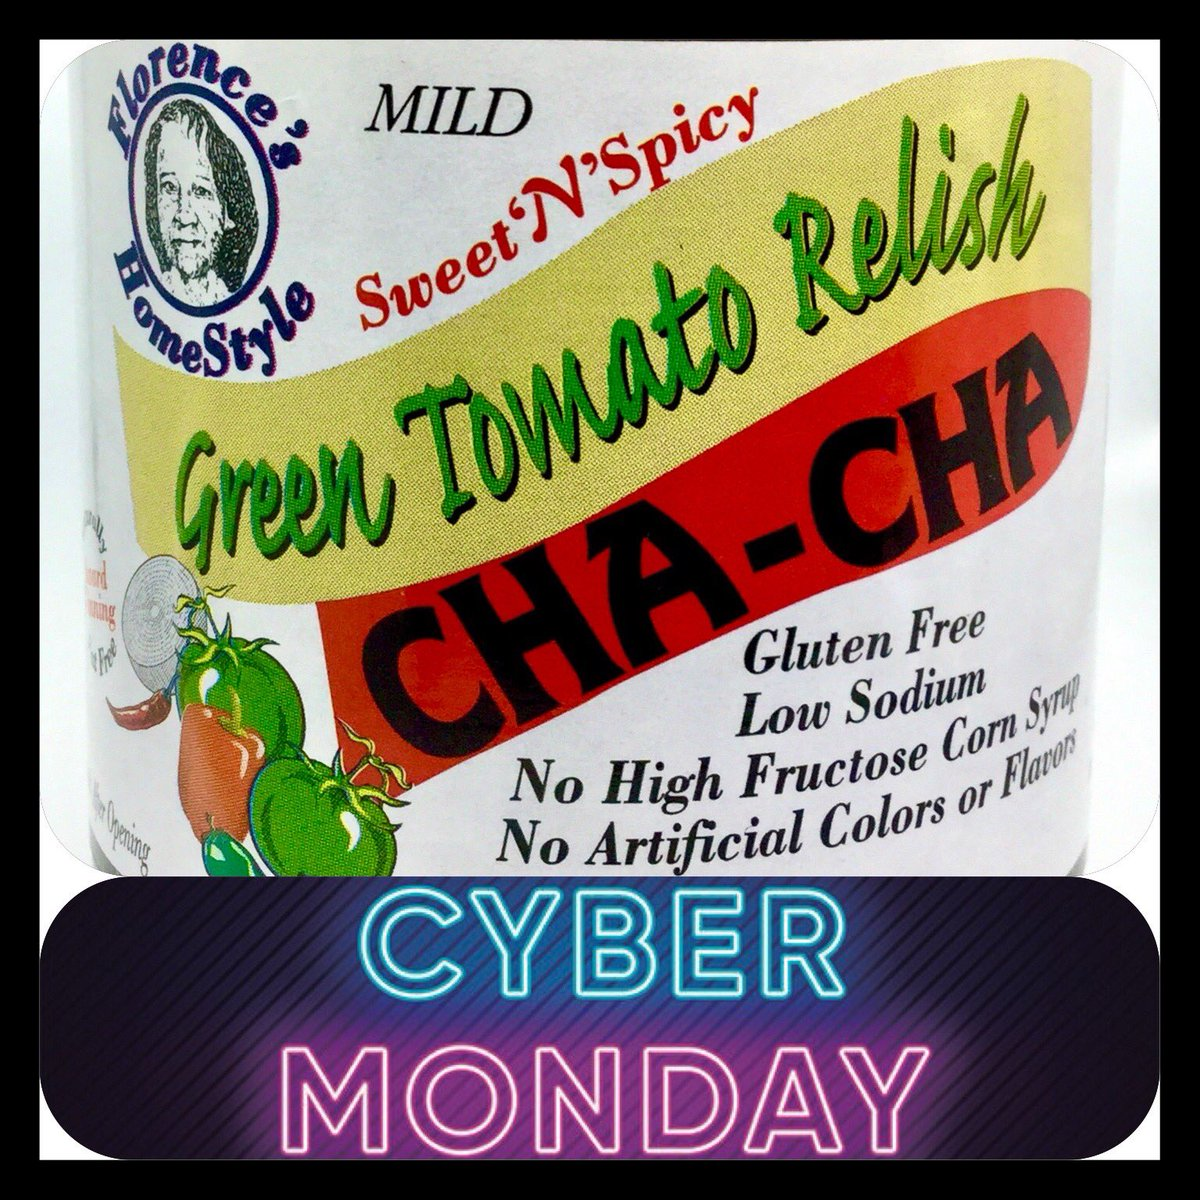 Through CYBER MONDAY use code: MILD50 for 50% OFF Mild Cha-Cha (offer expires 11.30.20) https://t.co/0pmm59qMzP #CyberMonday #chacha #southernfood #soulfood #vegansoulfood #vegan #greentomatorelish #holidayfood https://t.co/mTH7ThINuF